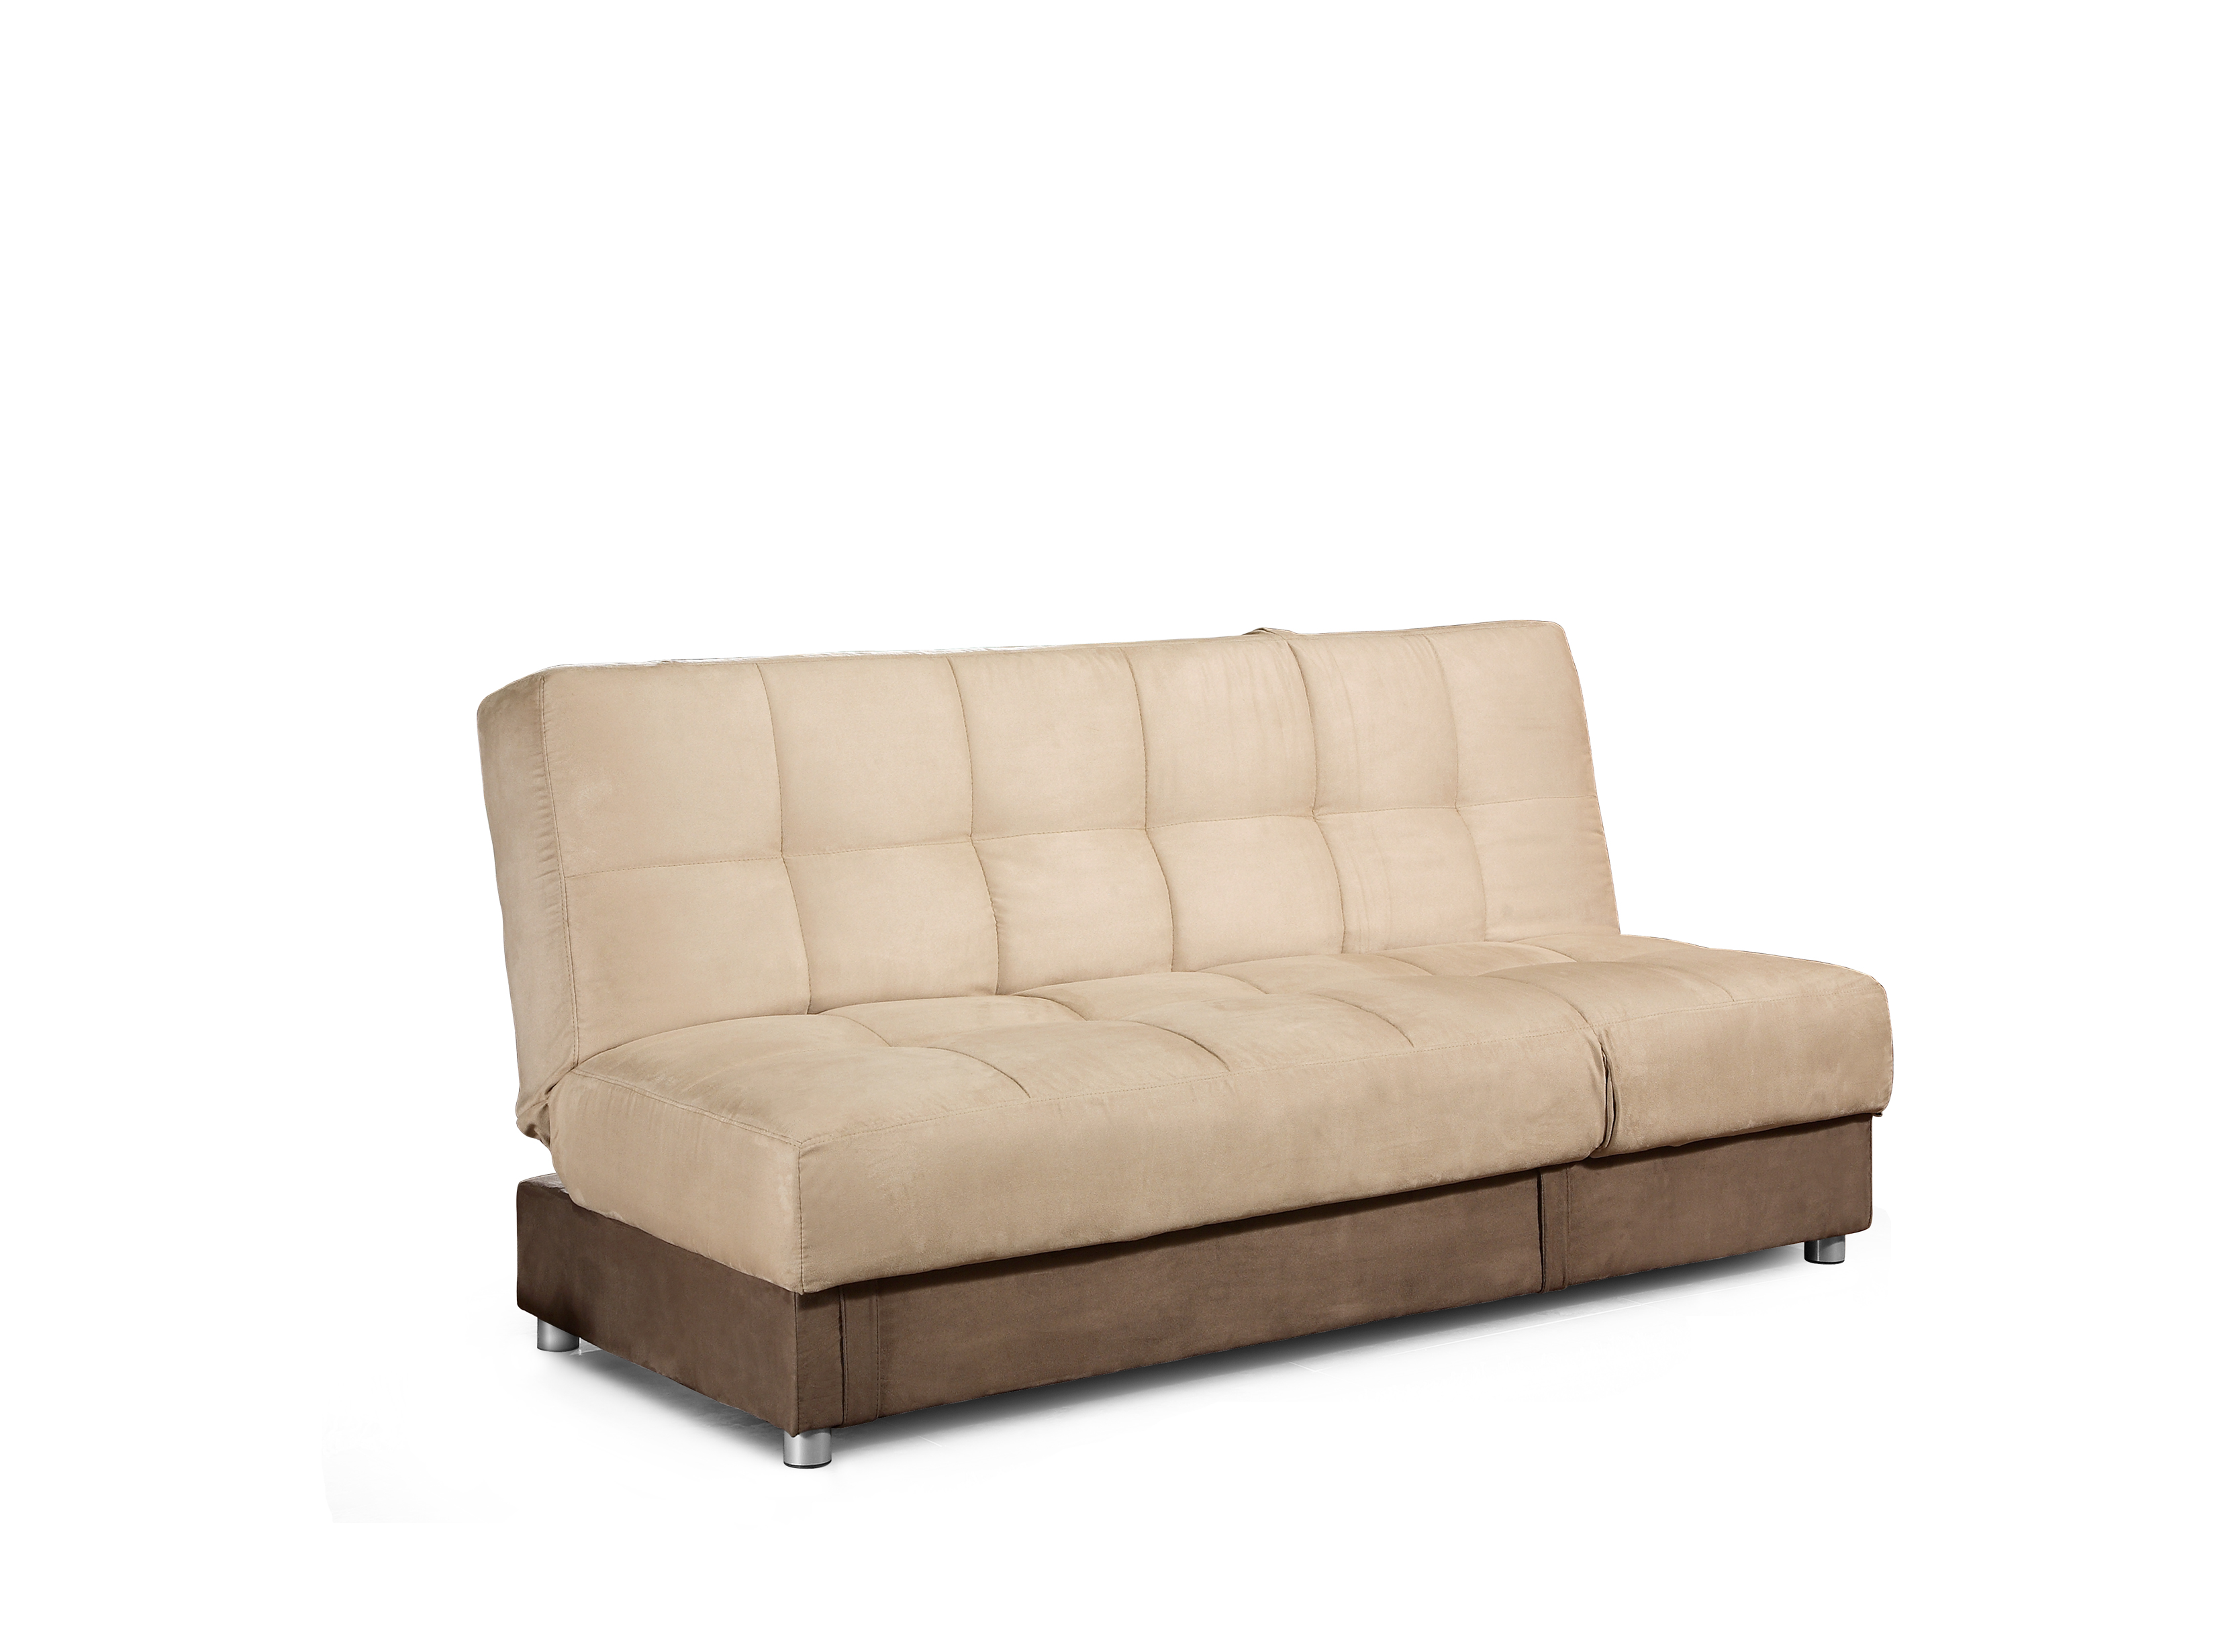 Sofa cama modelo maeva precio 329 euros living room for Furniture sofas and couches